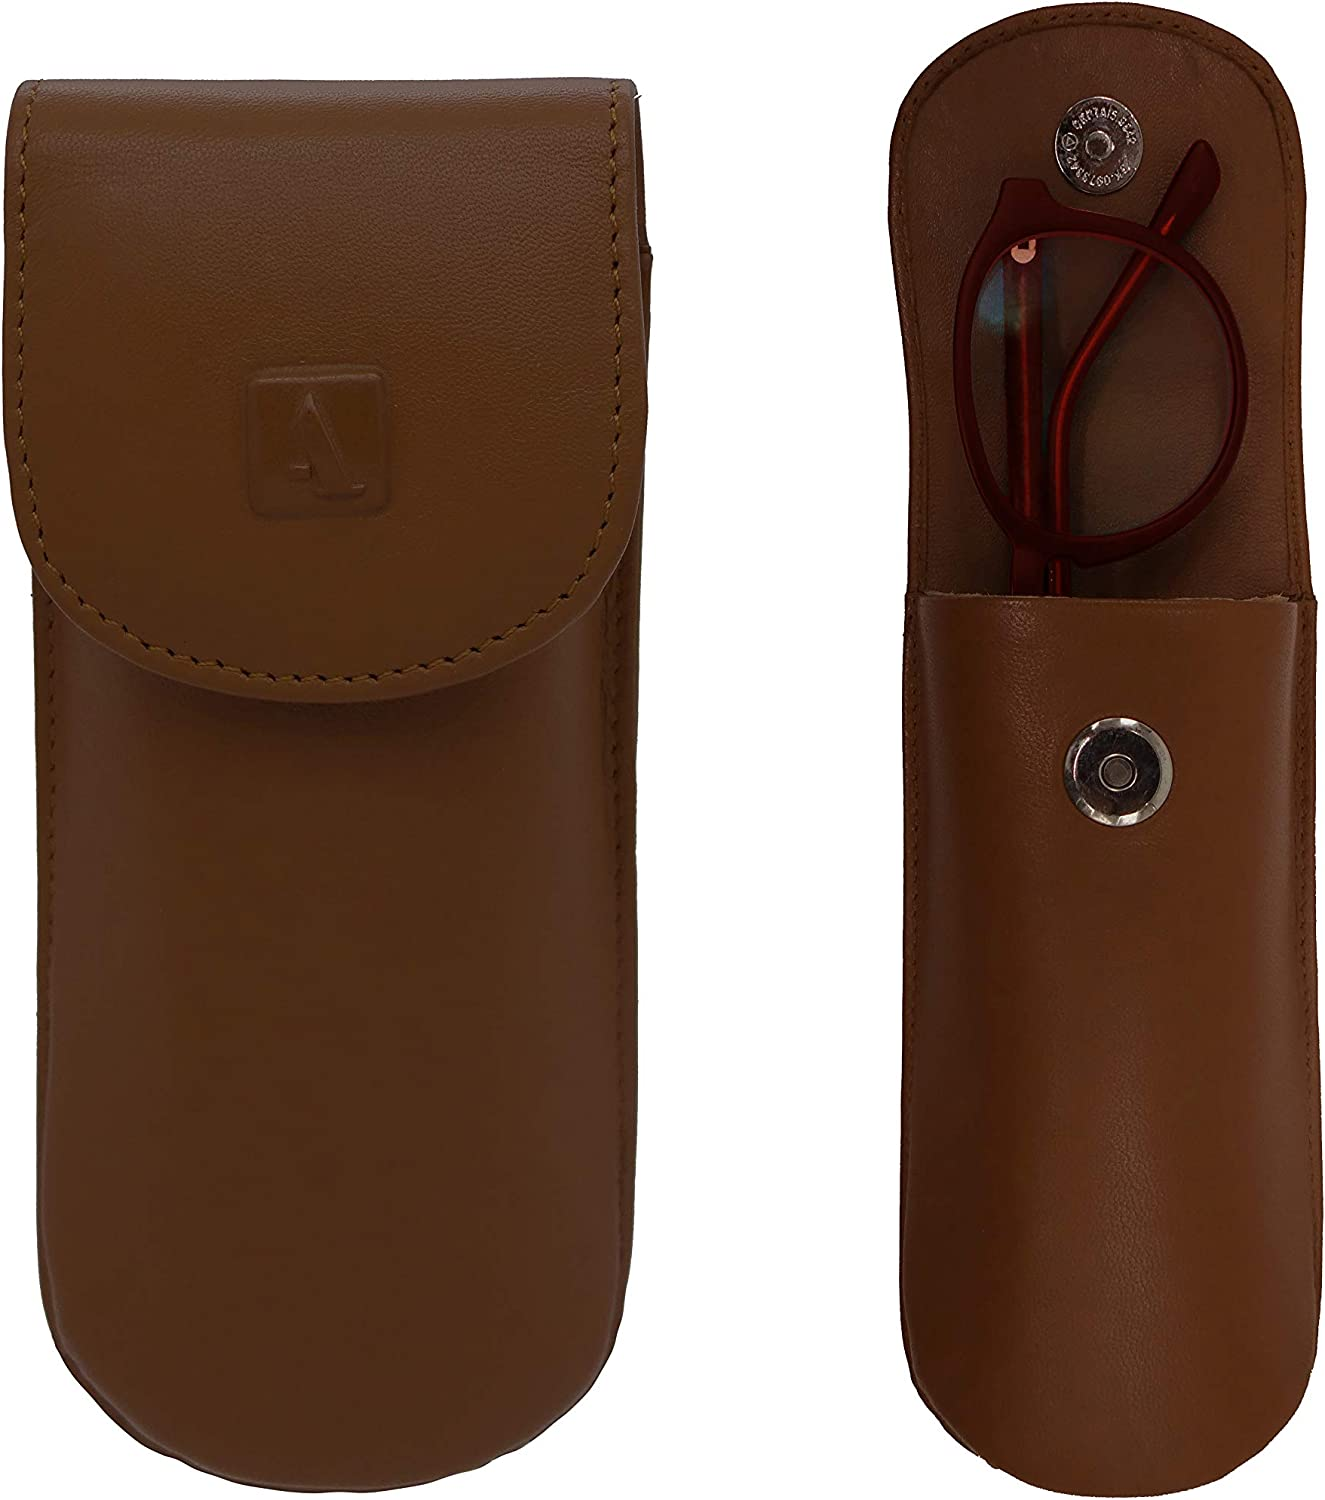 Adamis Full Grain Genuine Leather Spectacles Hard Shell Case for Men and Women